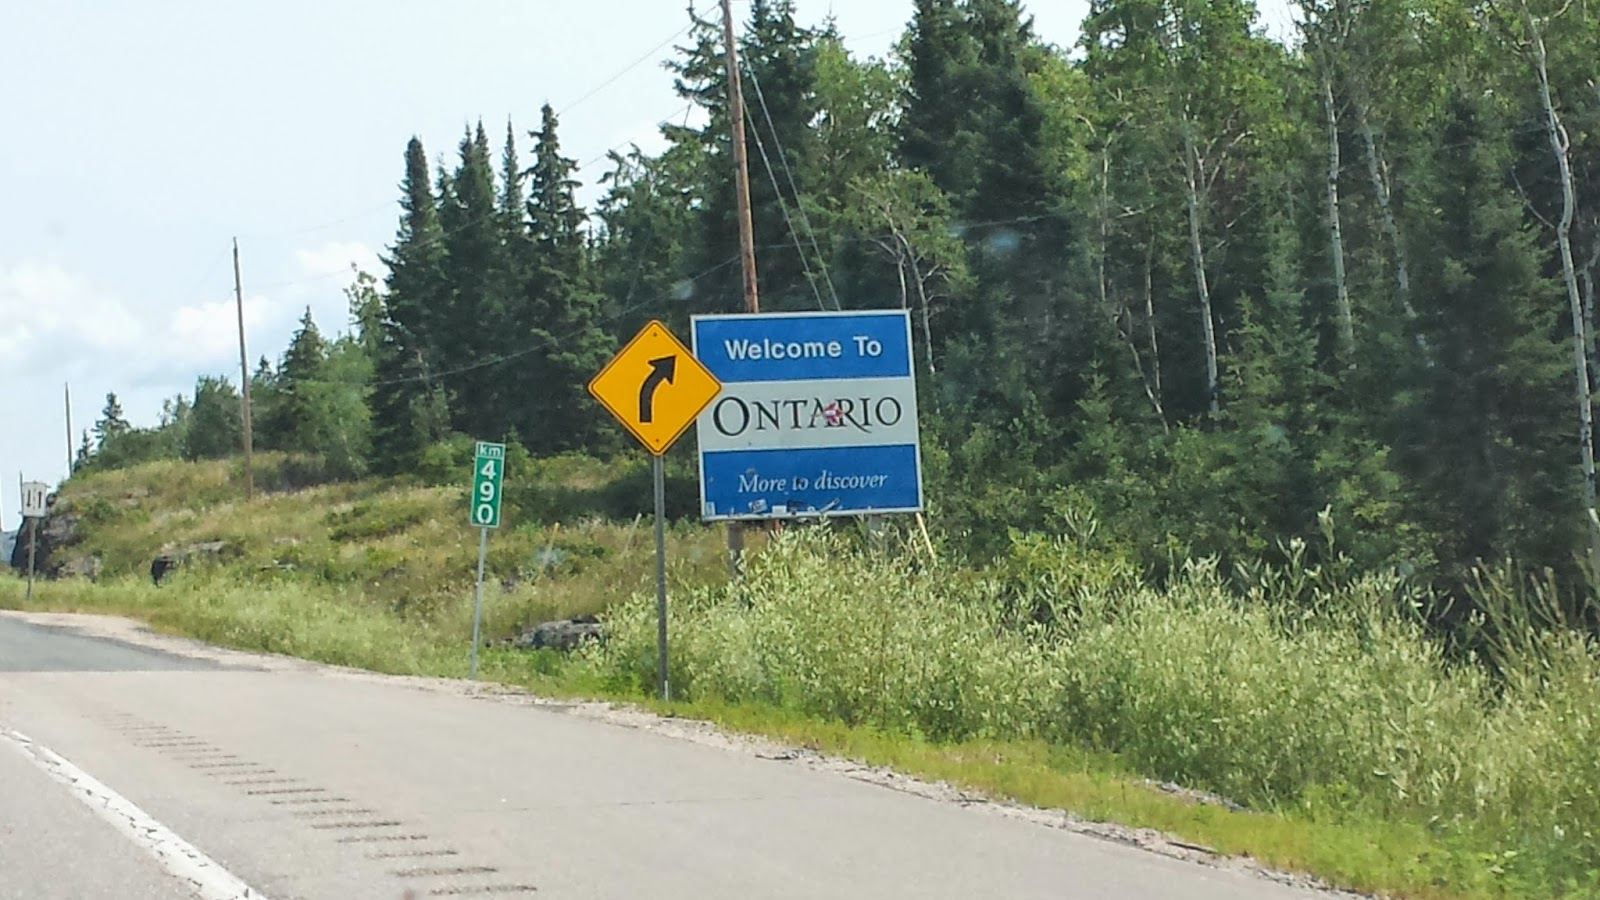 how to get from winnipeg to leamington ontario